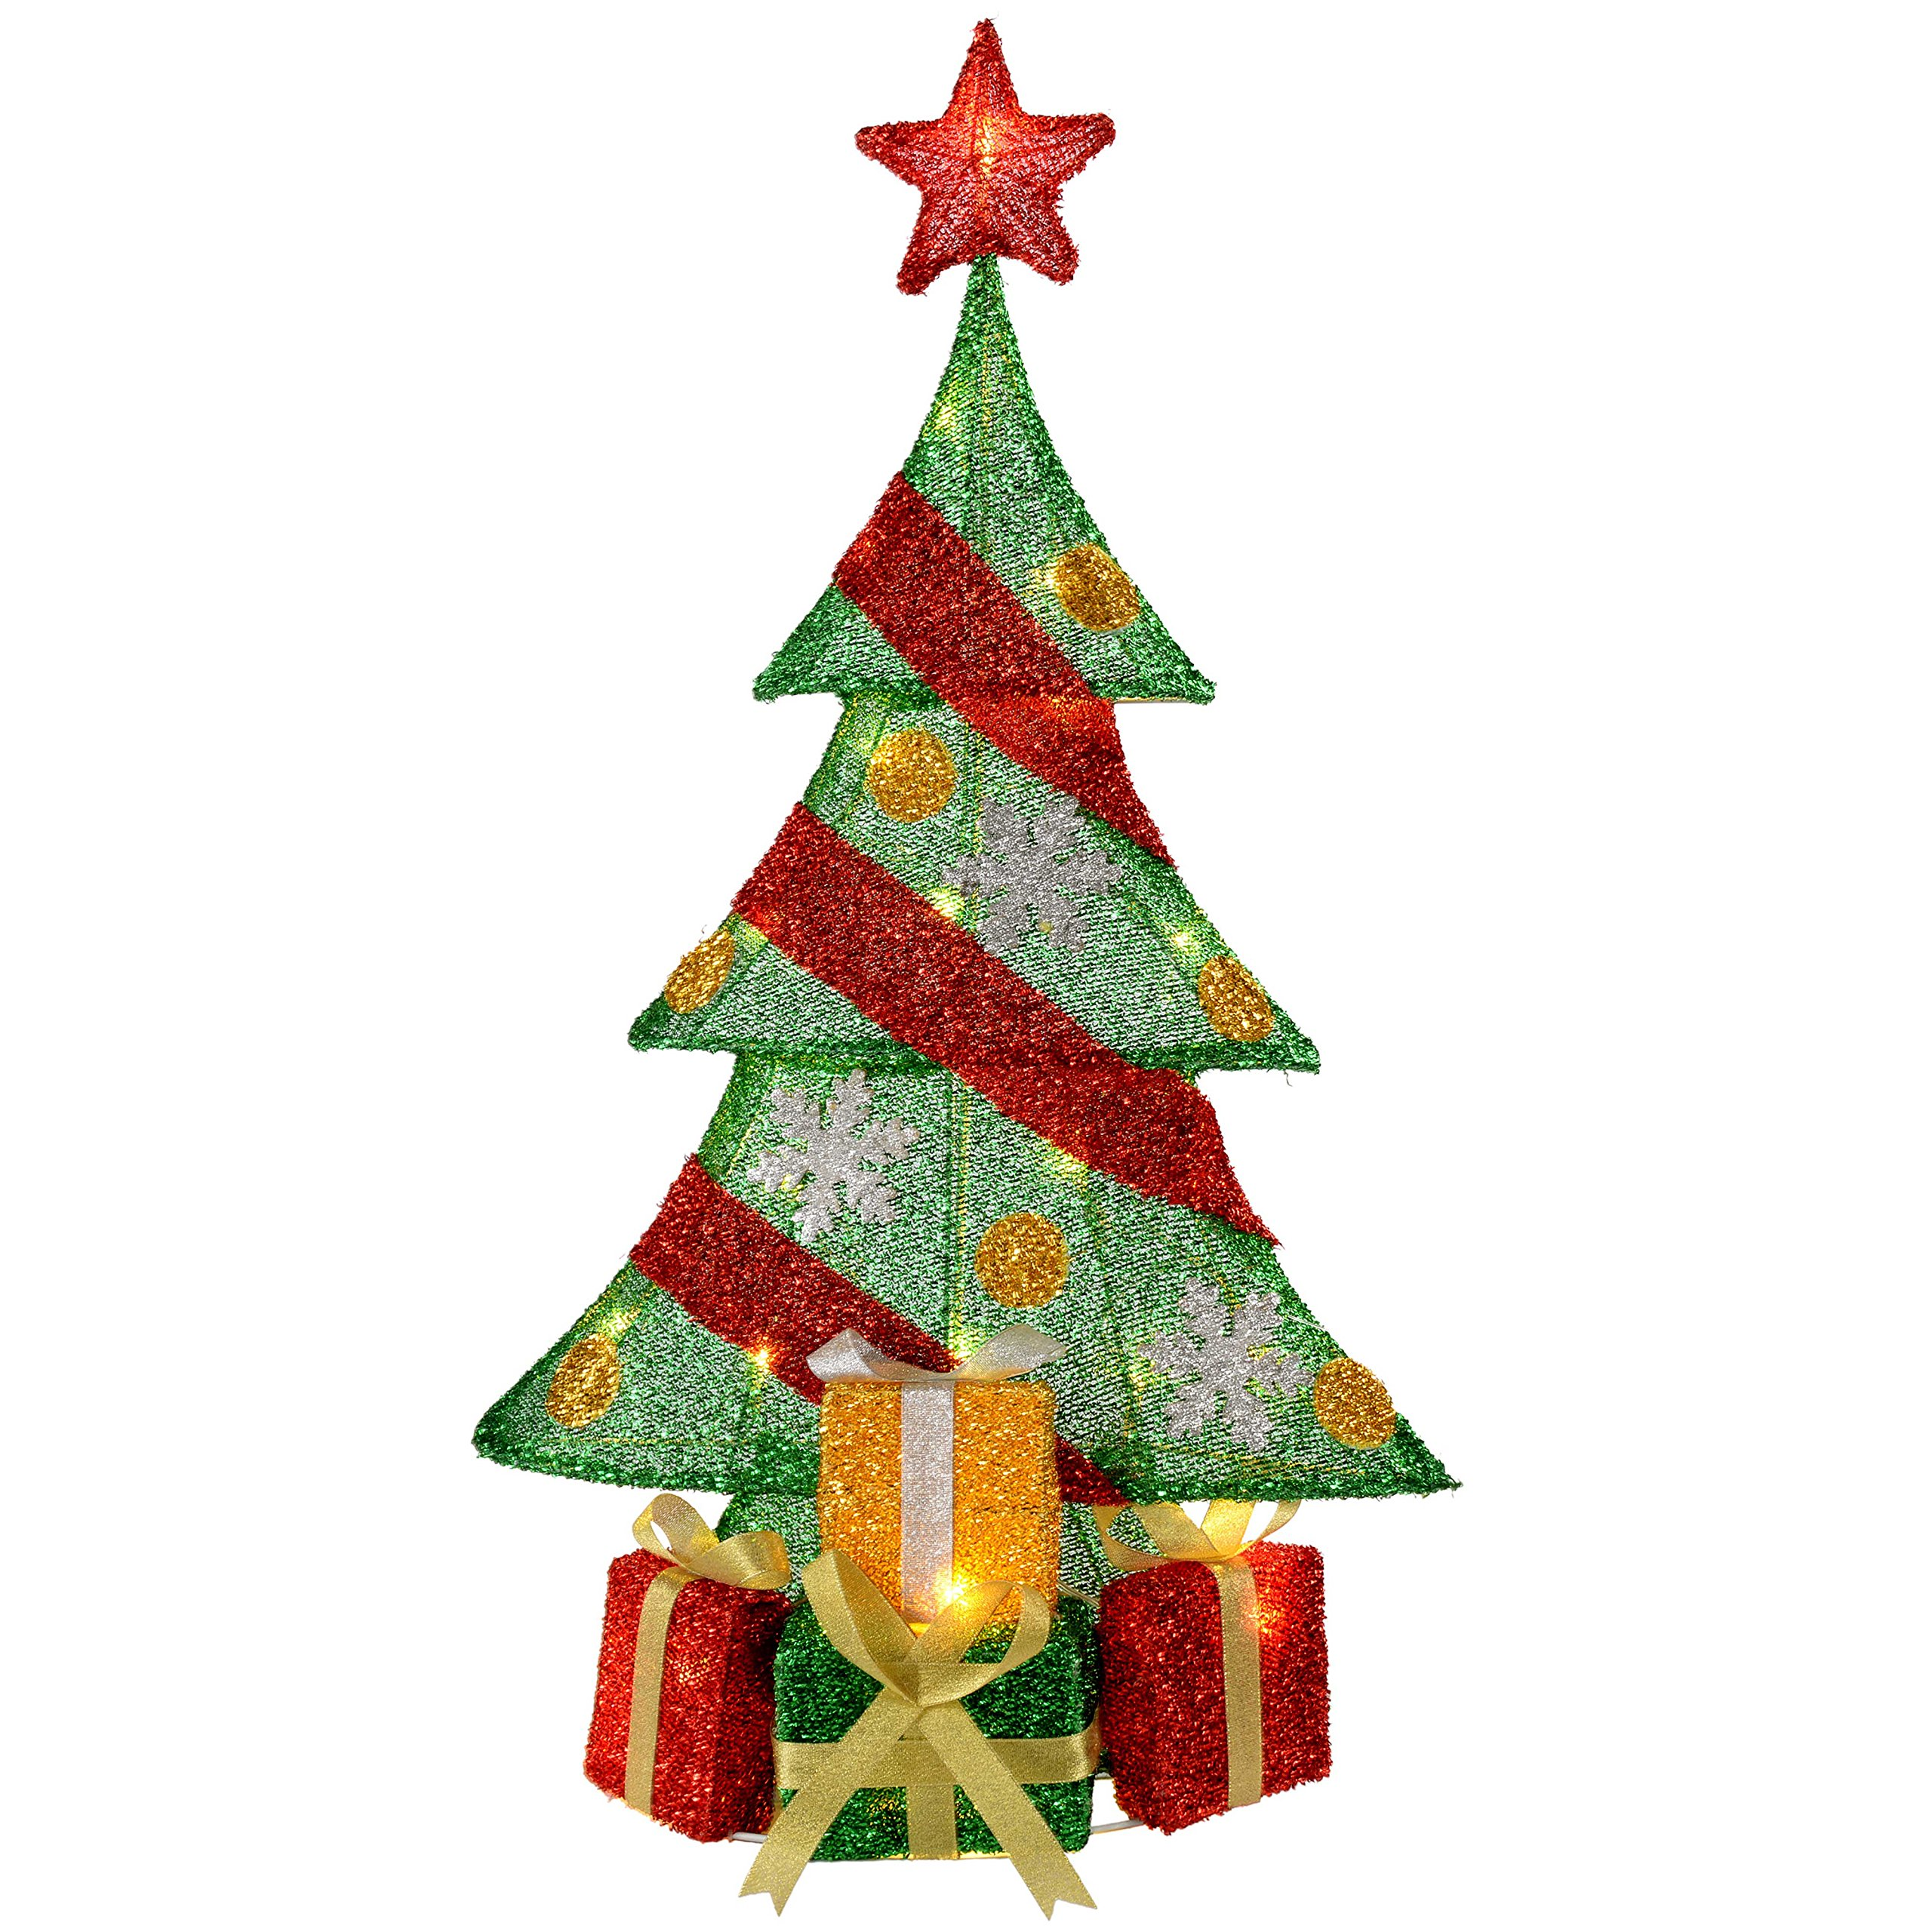 WeRChristmas Christmas Tree And Gifts Silhouette With Warm White Led Lights And Tinsel, 74 Cm - Large